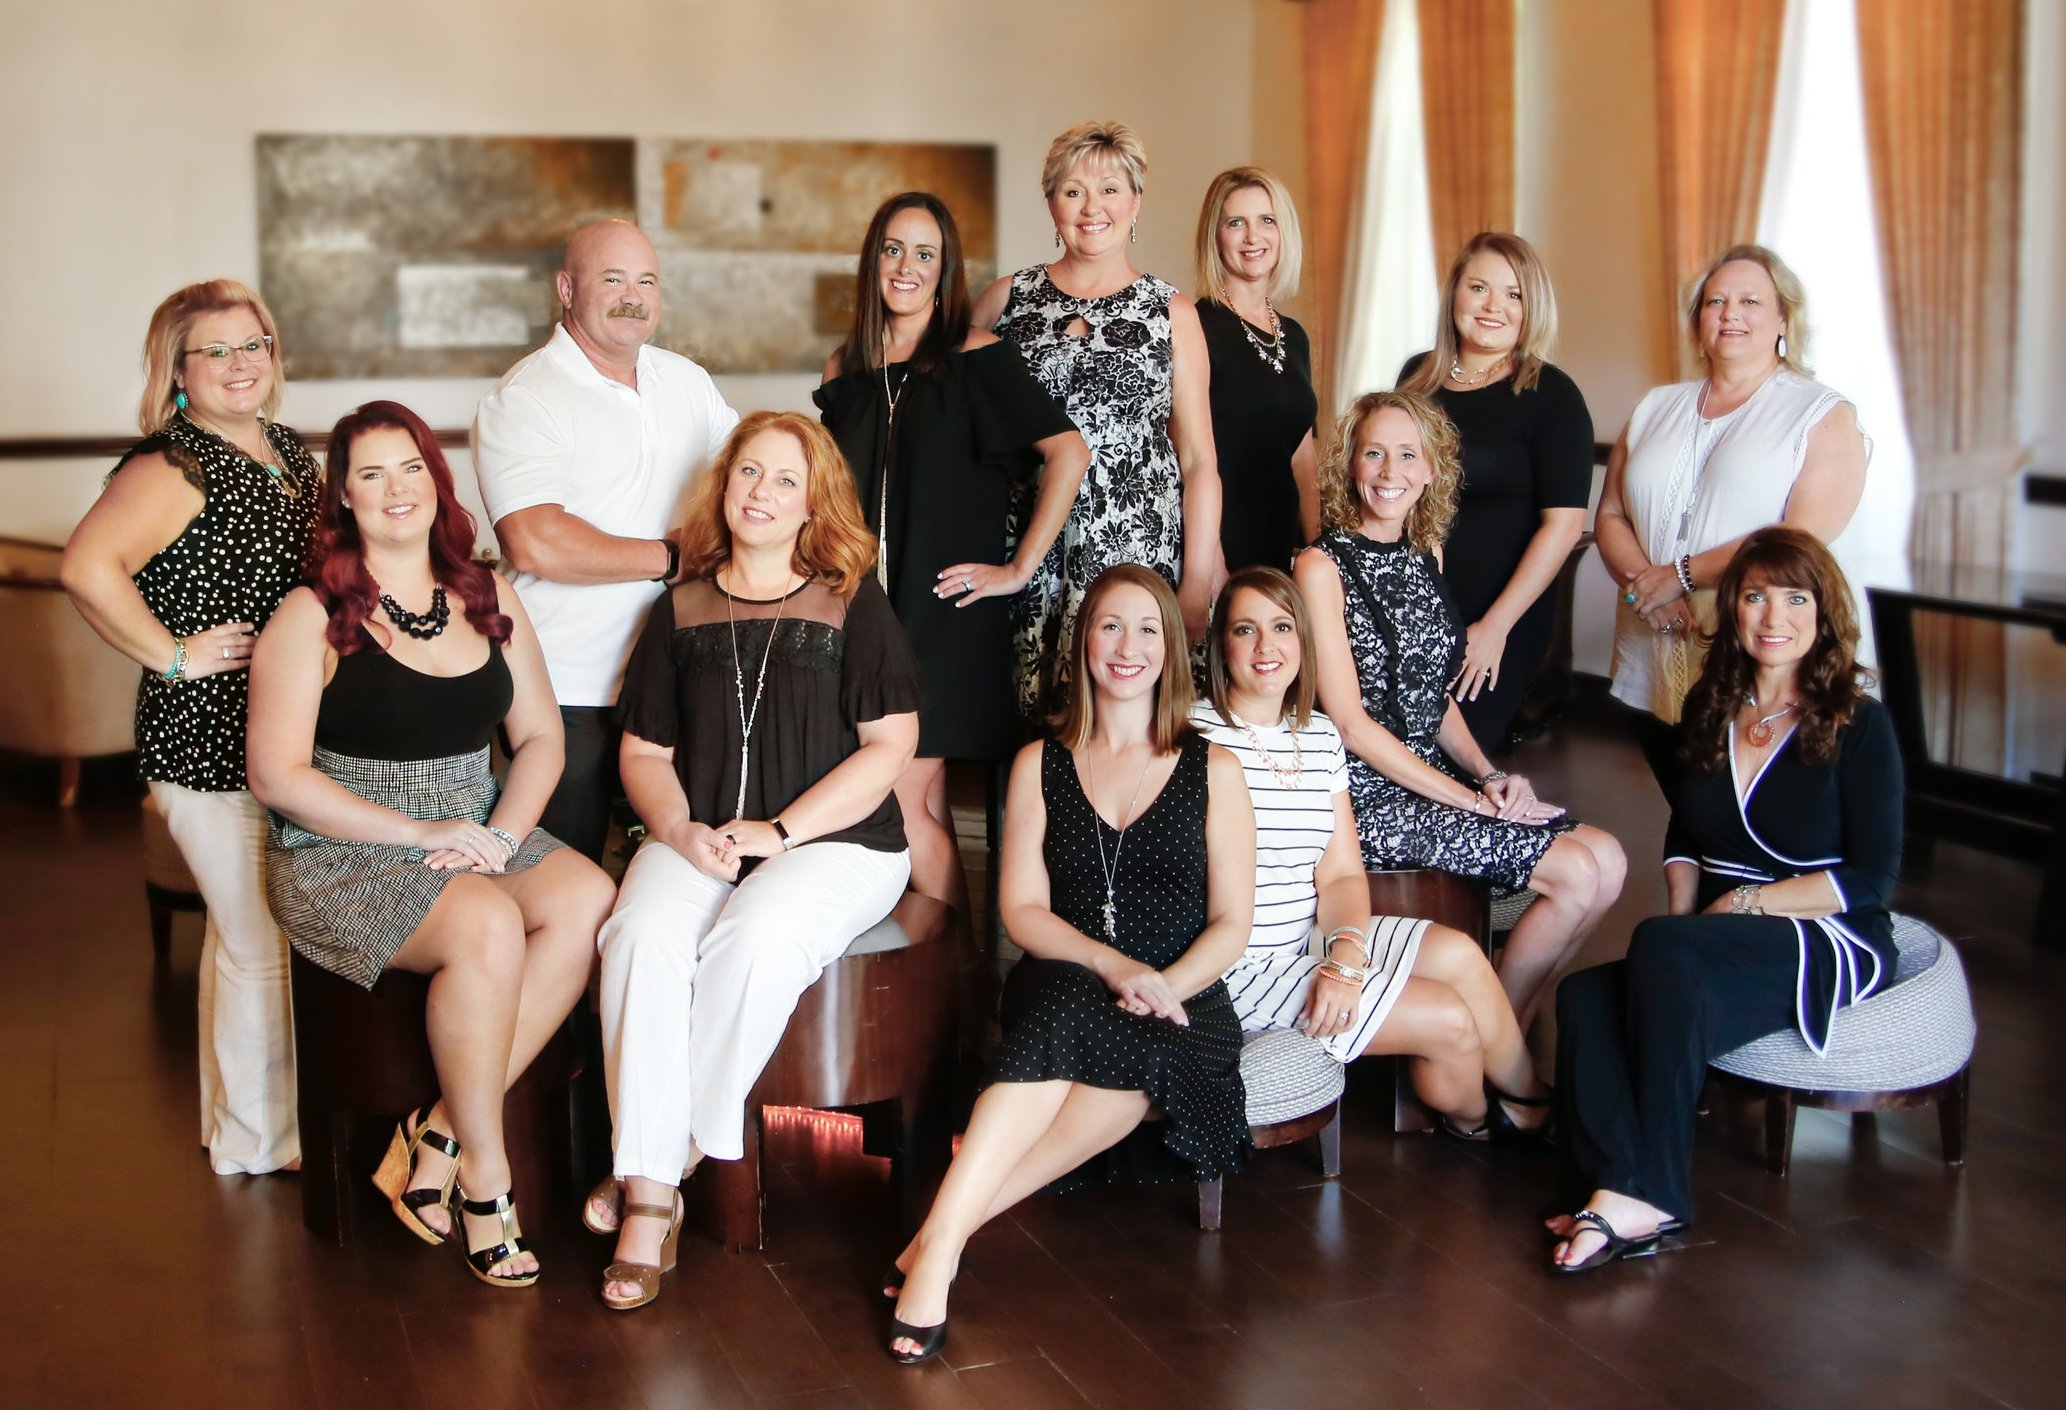 The Joy of Travel team of travel agents 2018